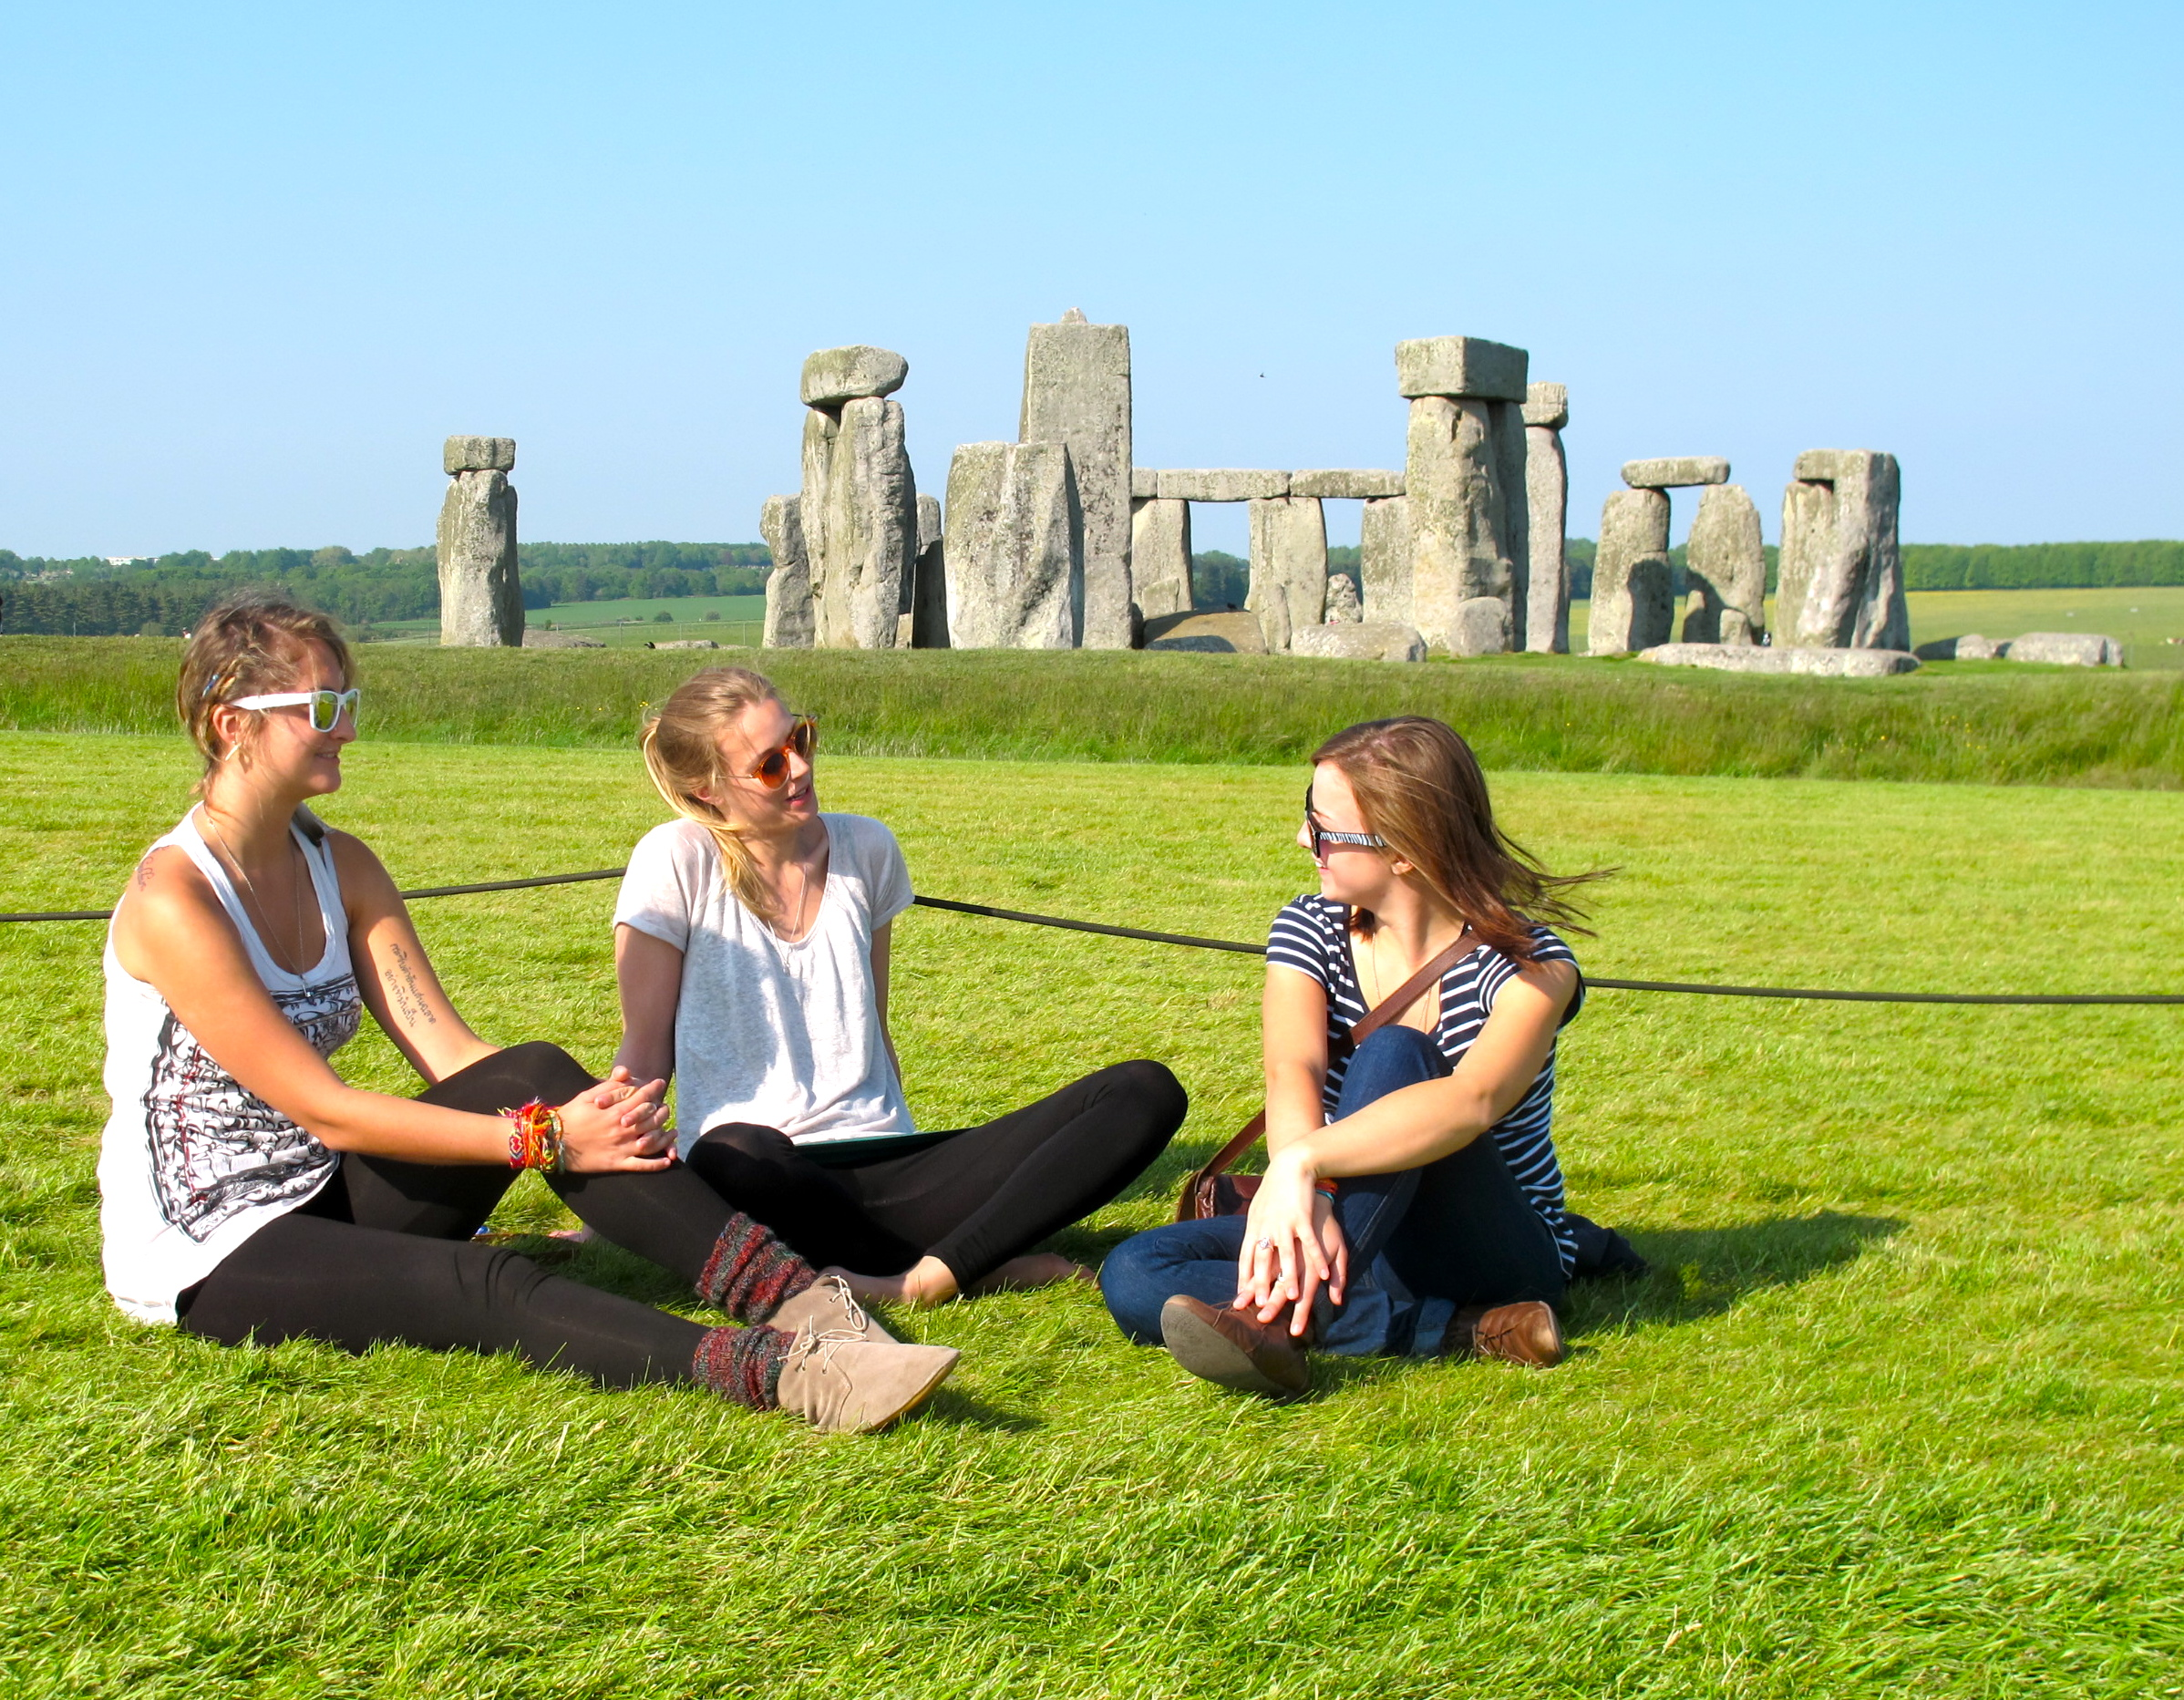 Friends at stonehenge